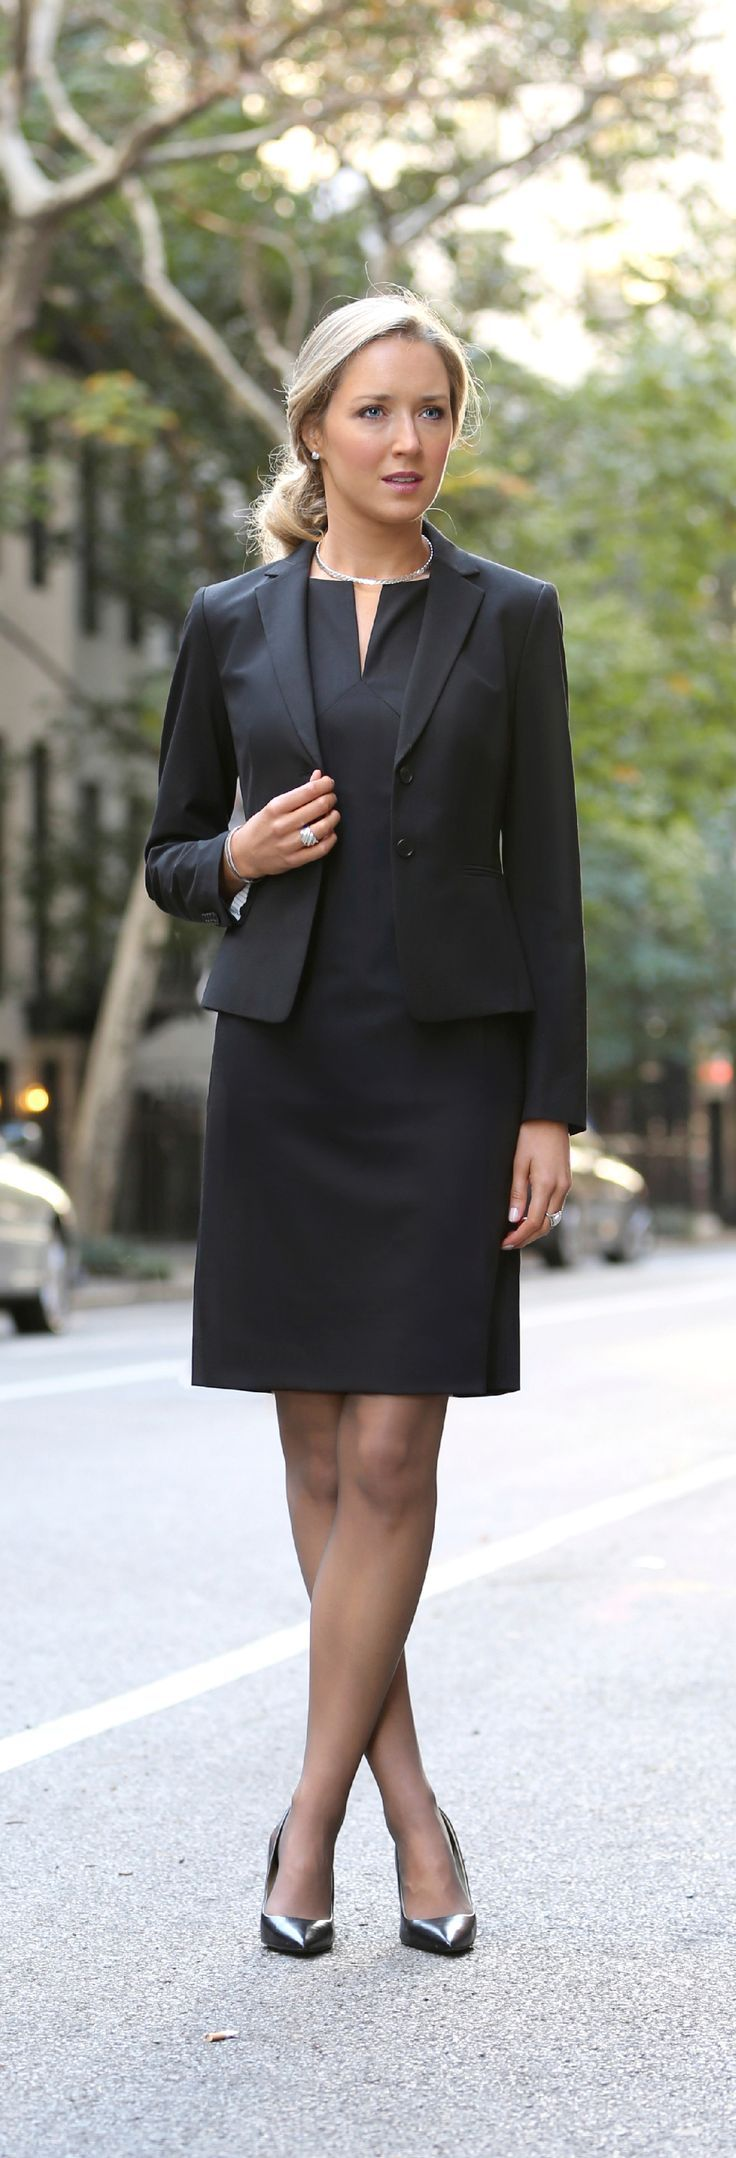 What To Wear To A Job Interview  17 Interview Outfit -5821